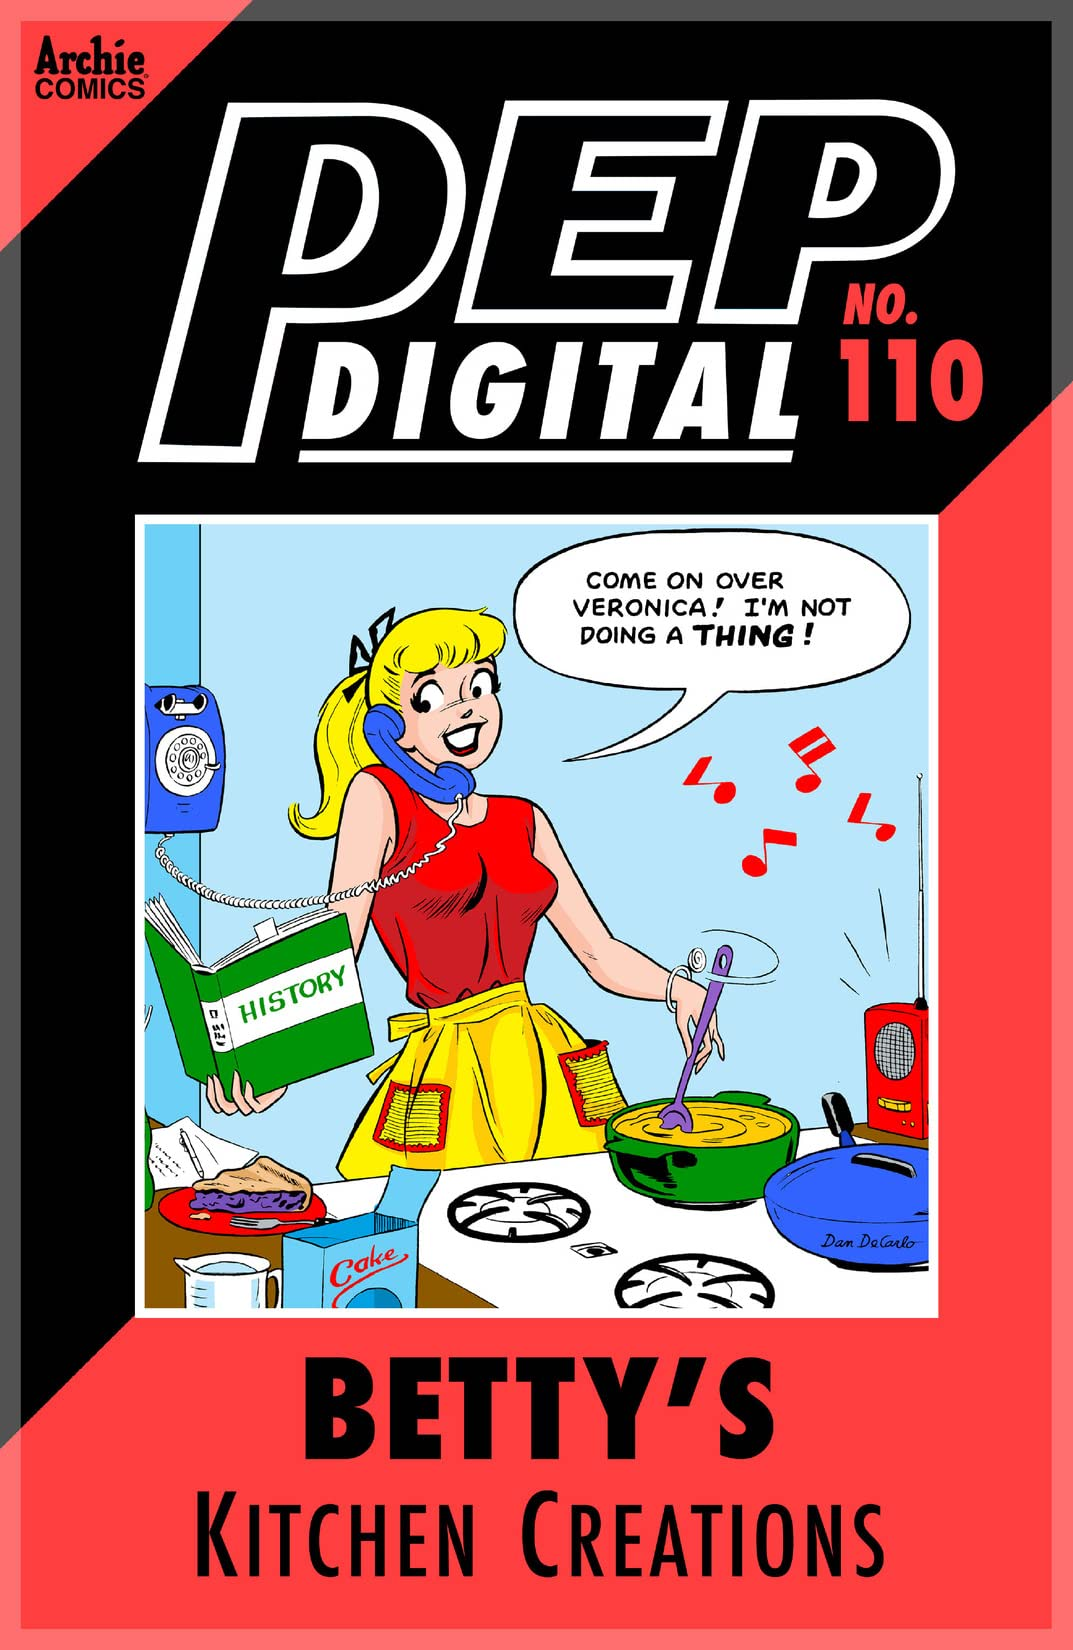 PEP Digital #110: Betty's Kitchen Creations